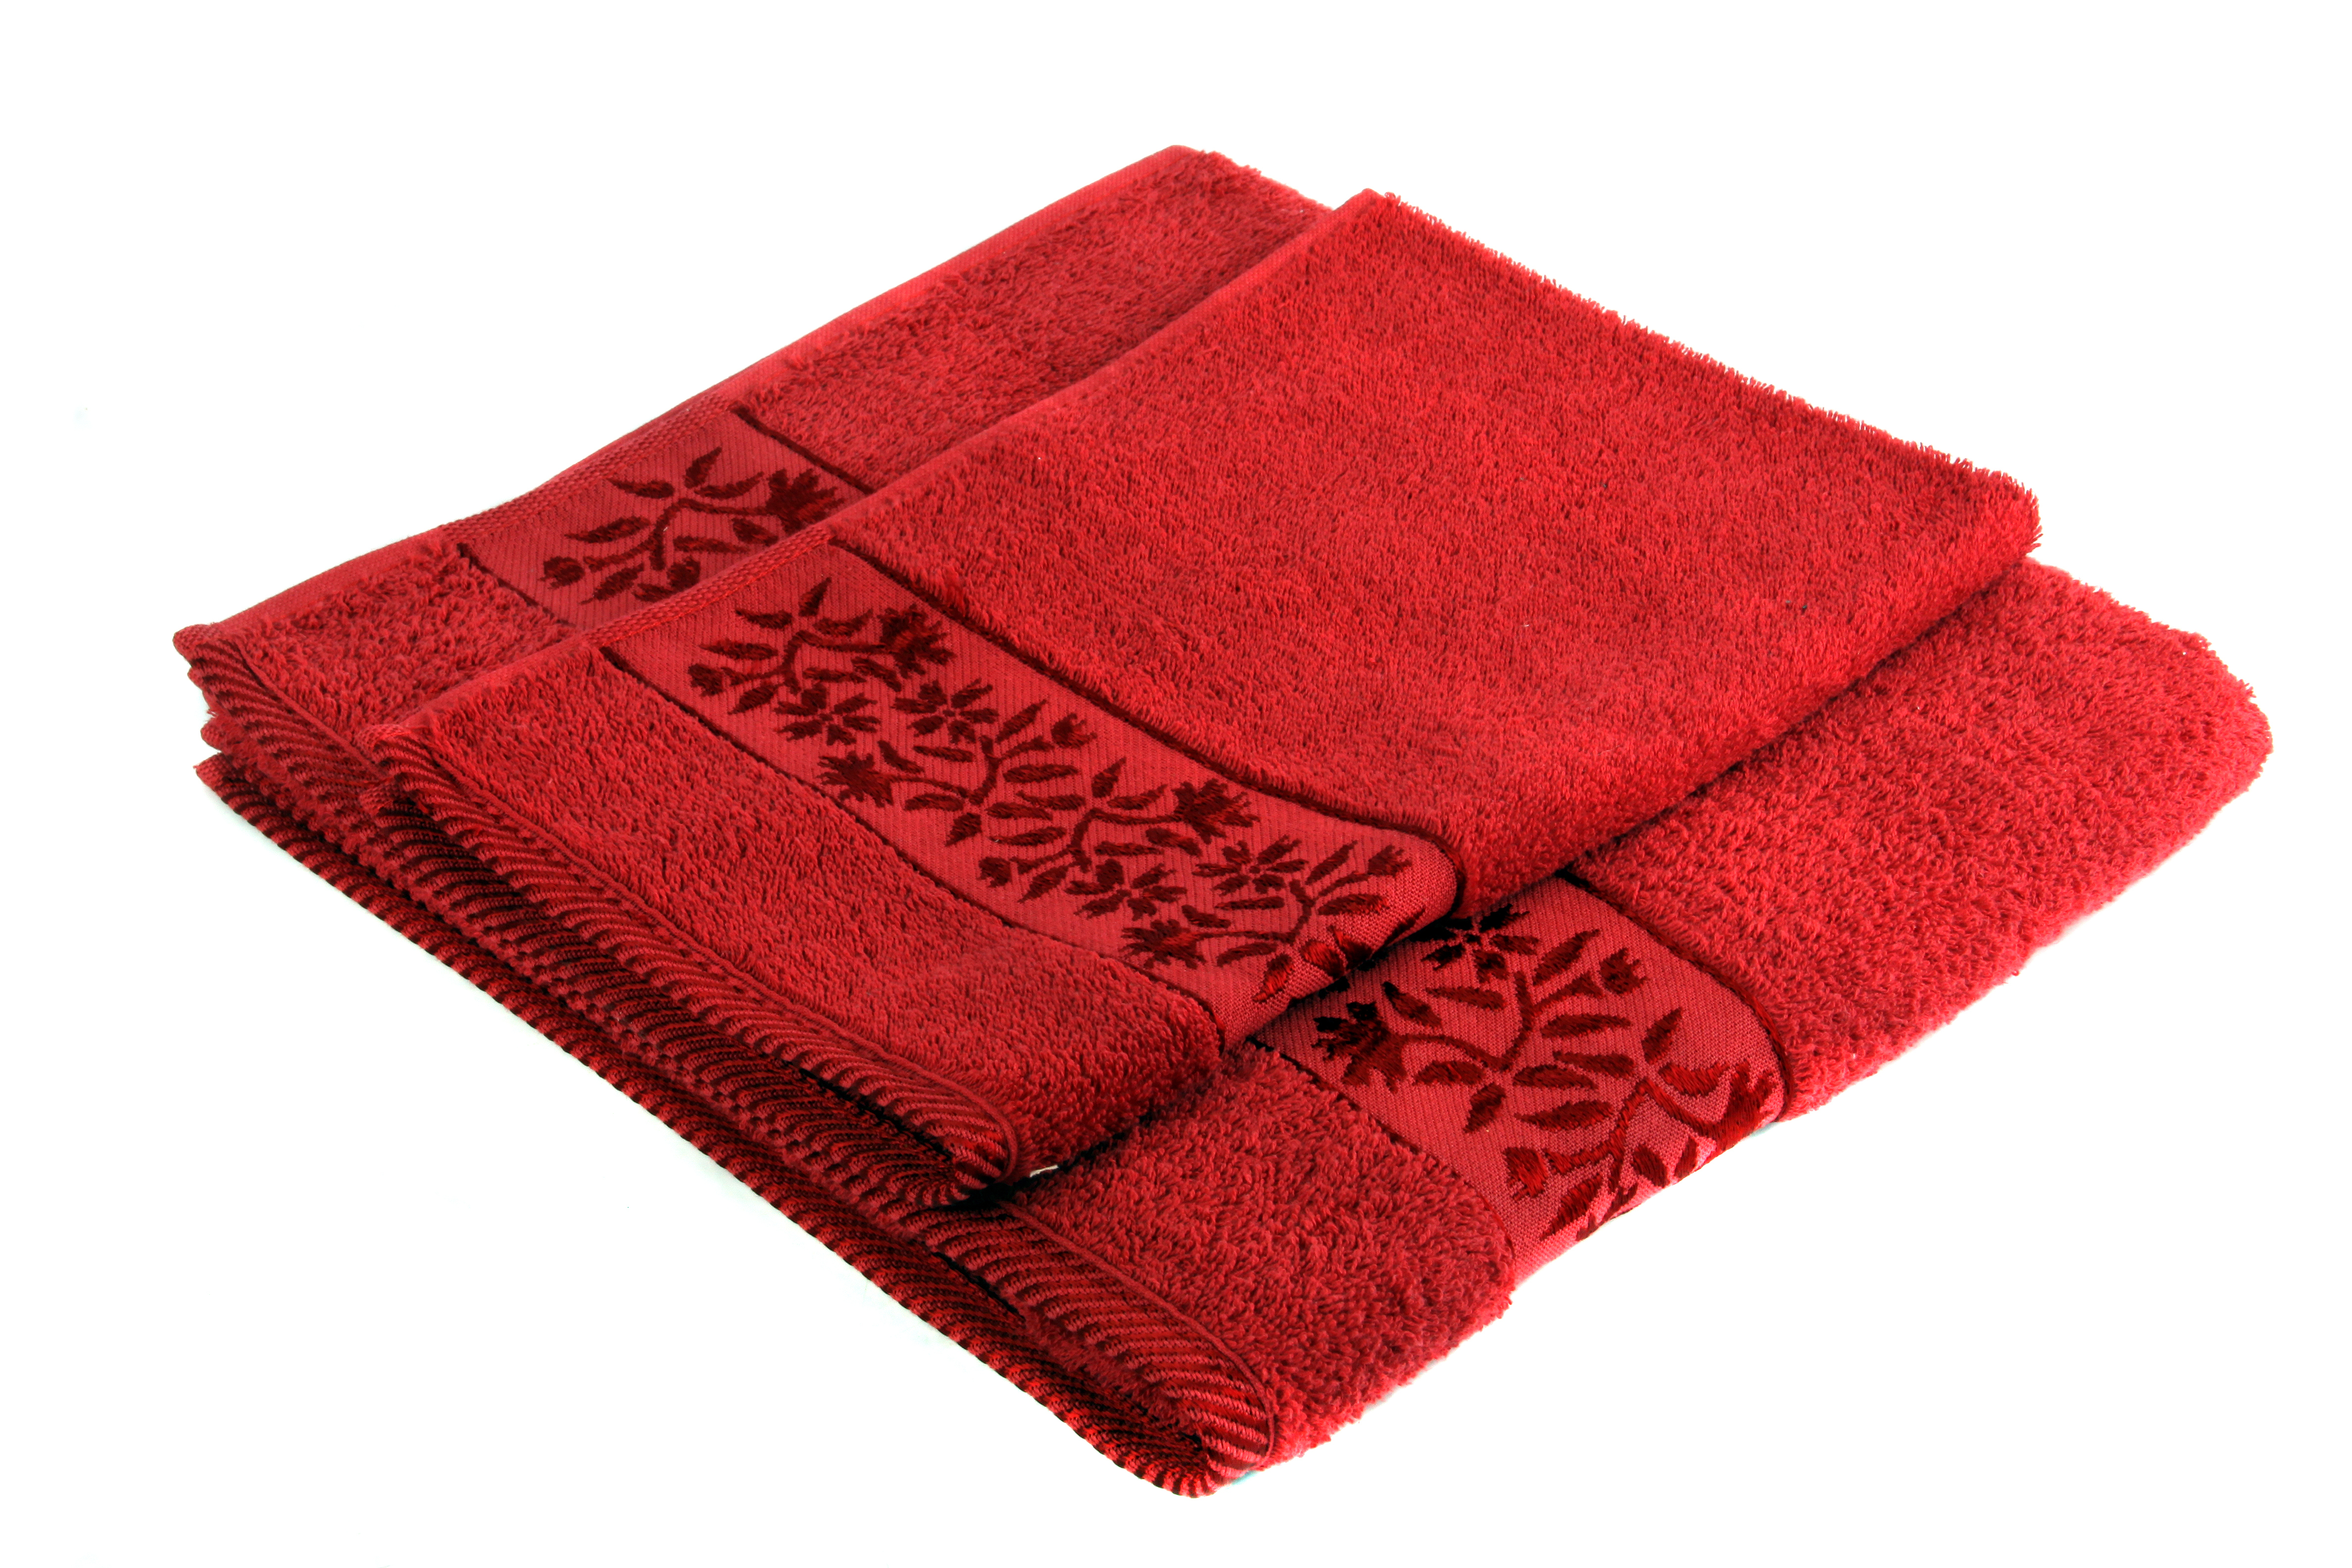 Dyed towel with decorative border.